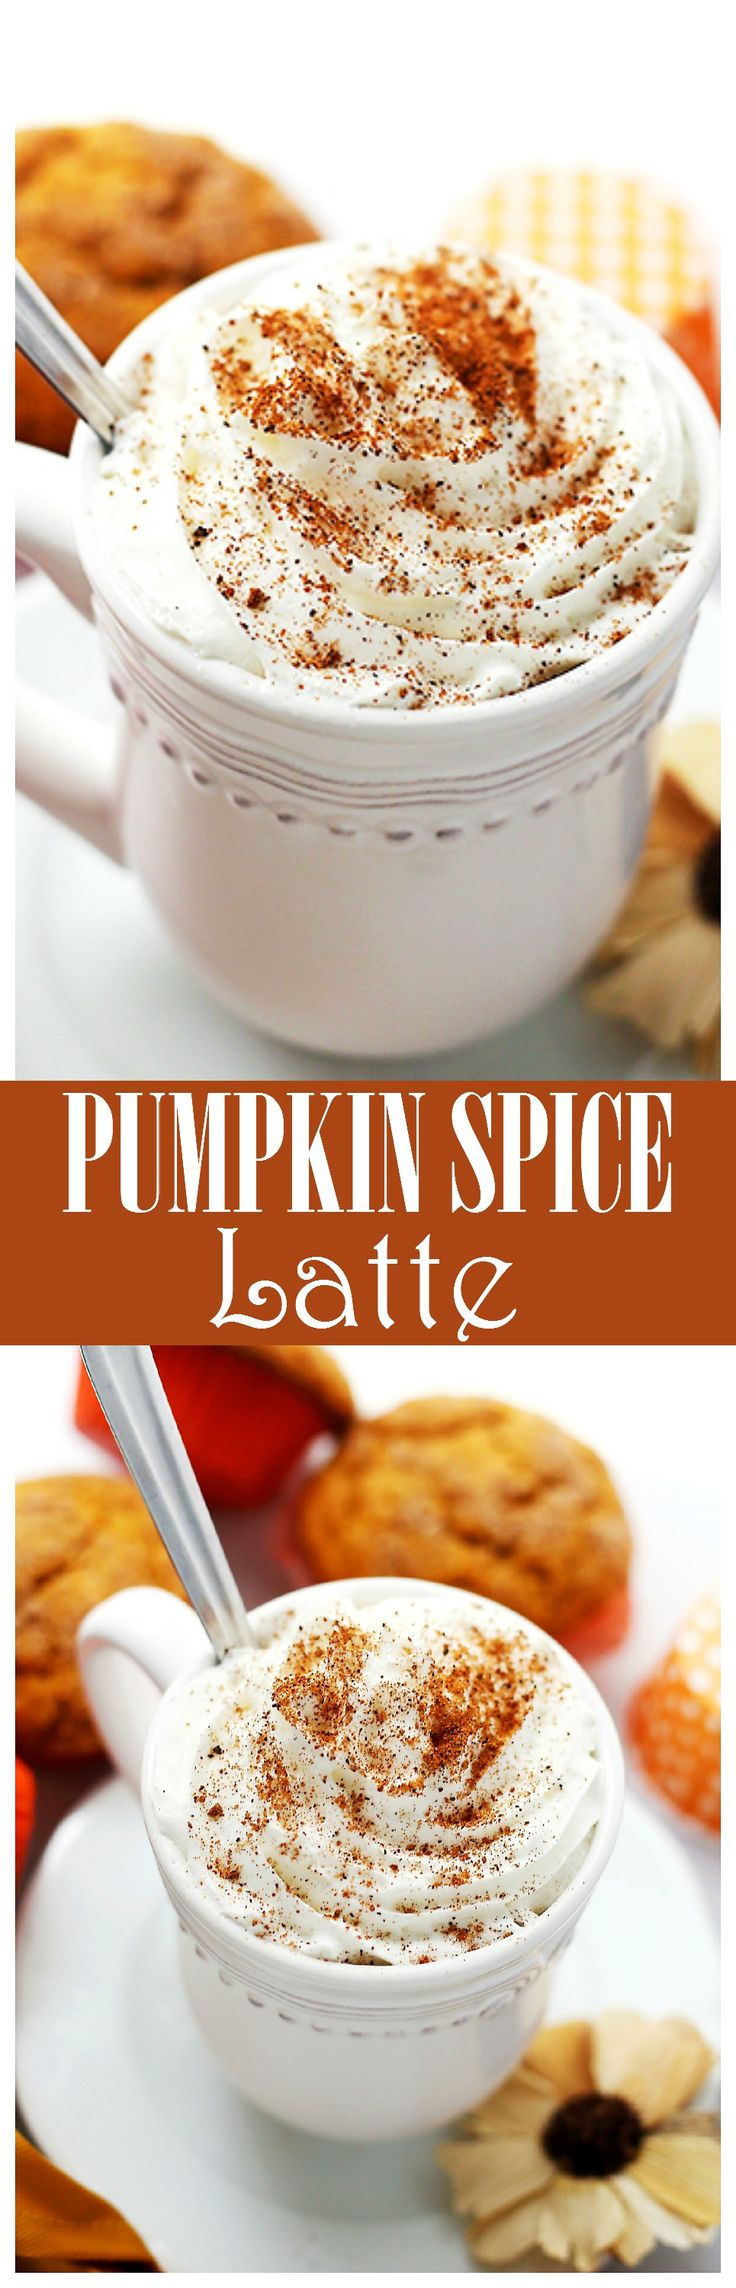 Pumpkin Spice Latte - Make your own Starbucks Pumpkin Spice Latte at home! SO easy, SO delicious Pumpkin Spice Latte without all the artificial flavors and colors.